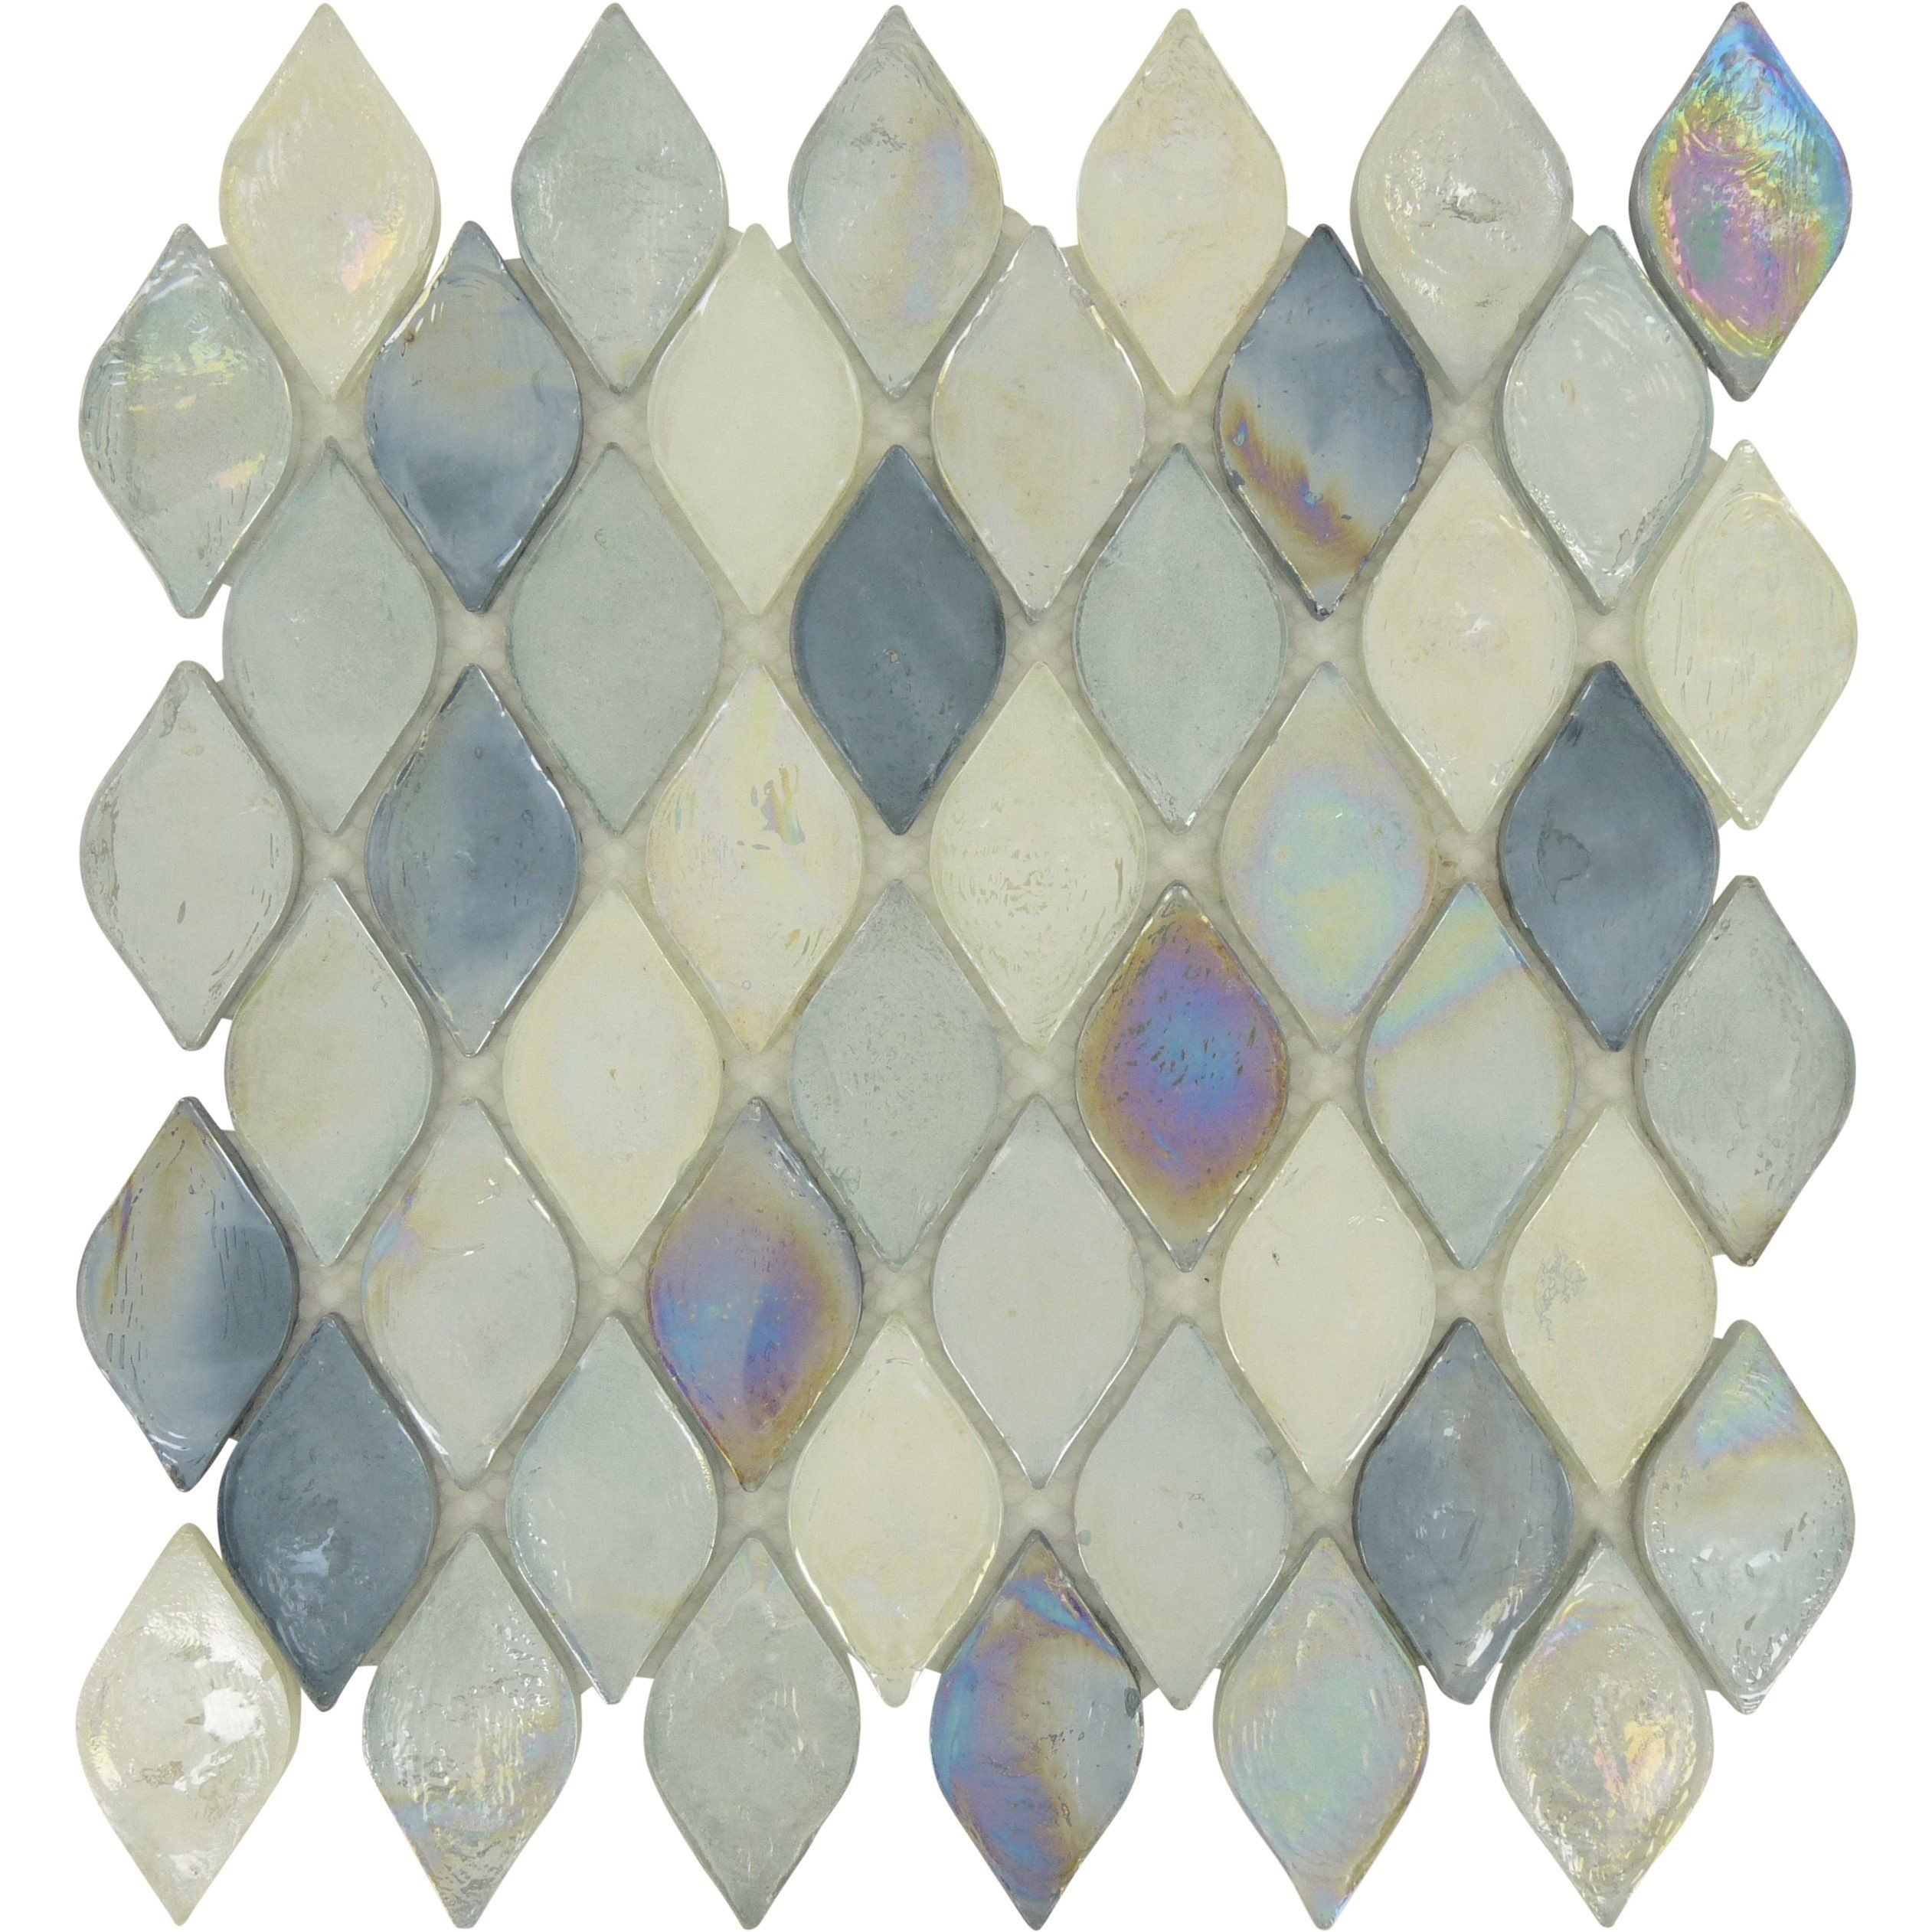 dd47f542a6aa Atlantis Leaf Blue Glossy and Iridescent Glass Tile